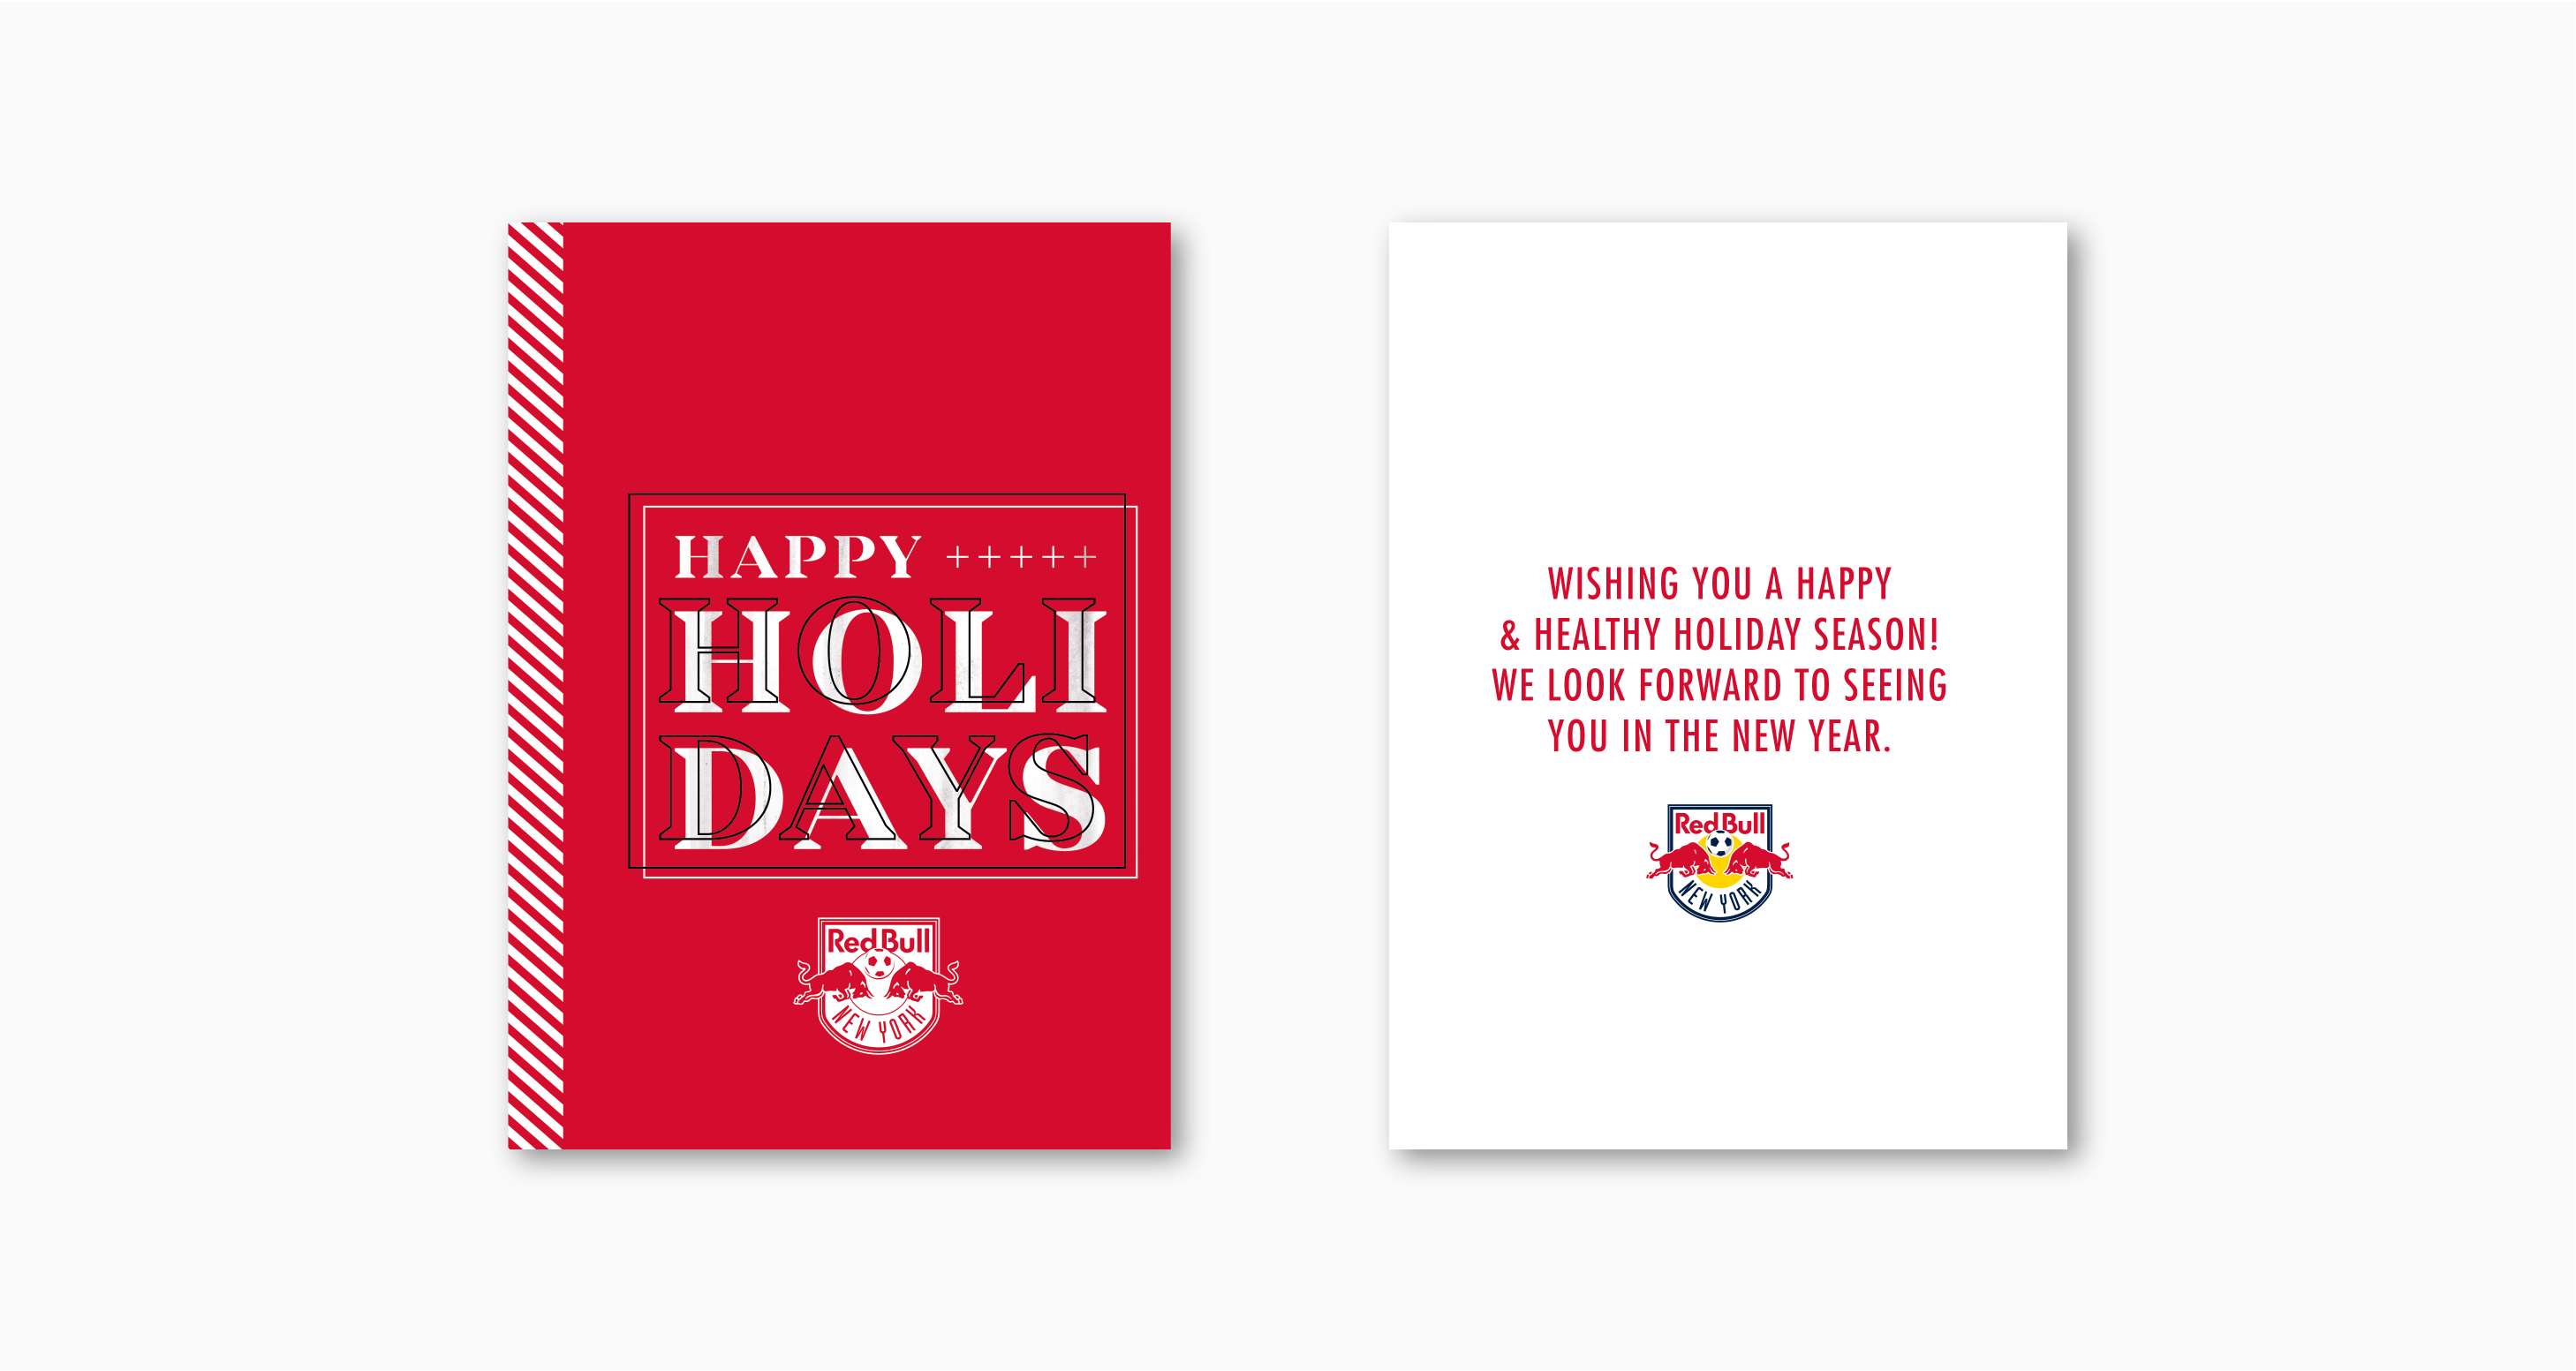 New York Red Bull Holiday Card